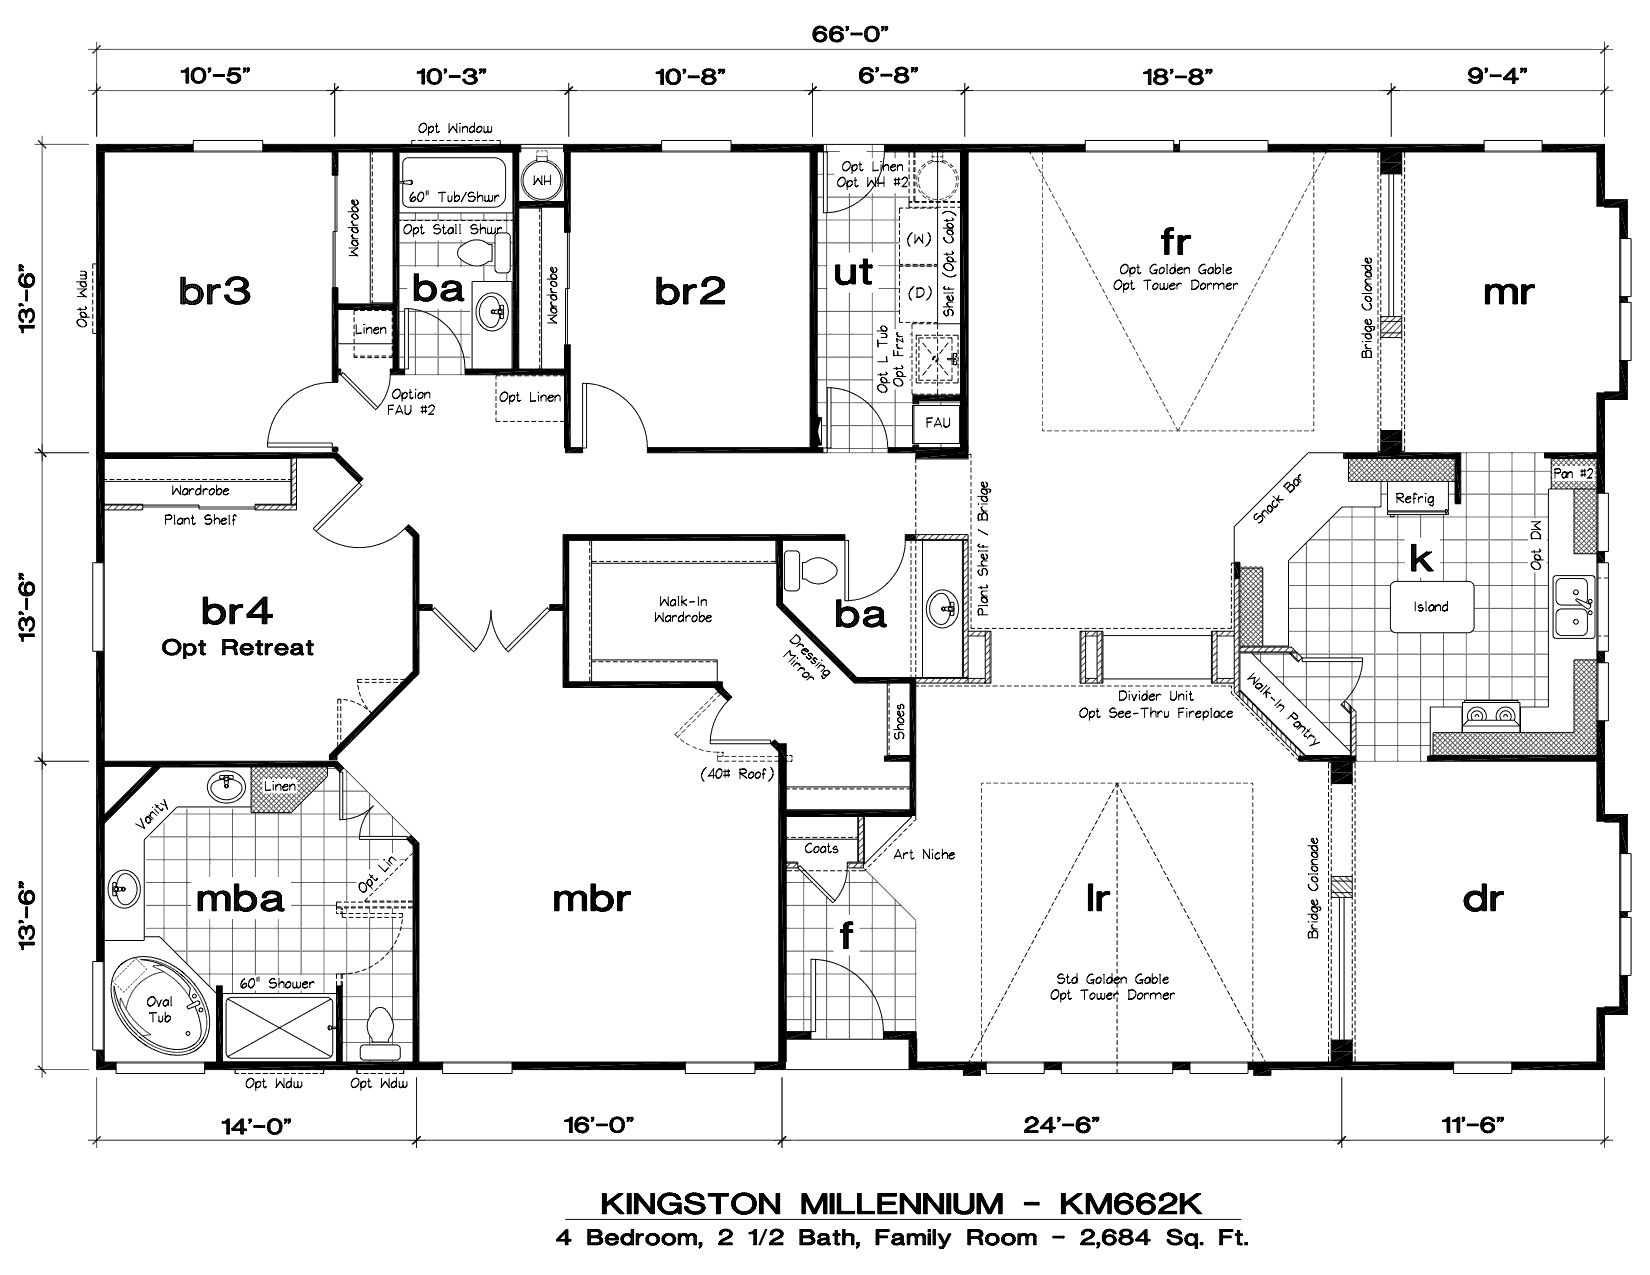 5 Bedroom Double Wide Mobile Home Floor Plans  A house is